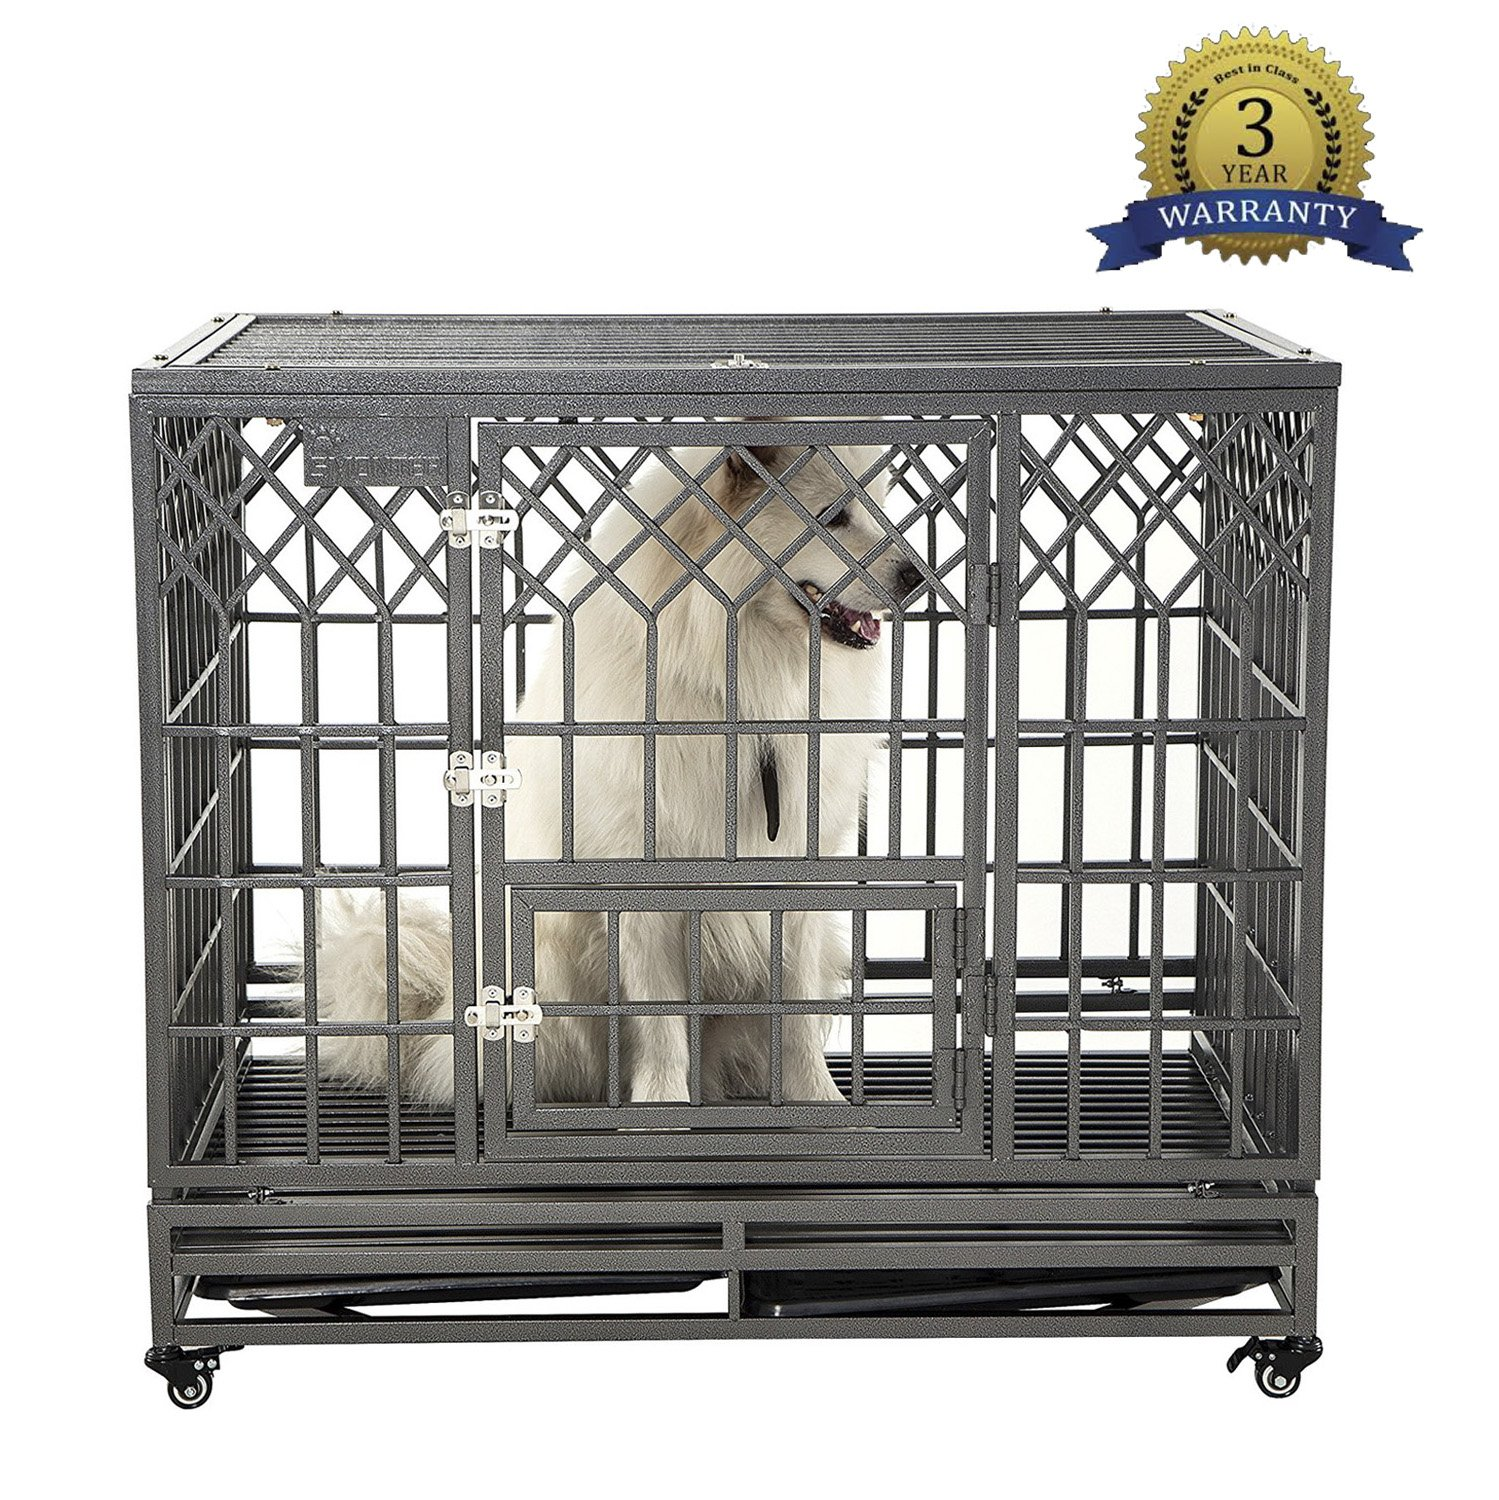 SMONTER Heavy Duty Dog Crate Strong Metal Pet Kennel Playpen